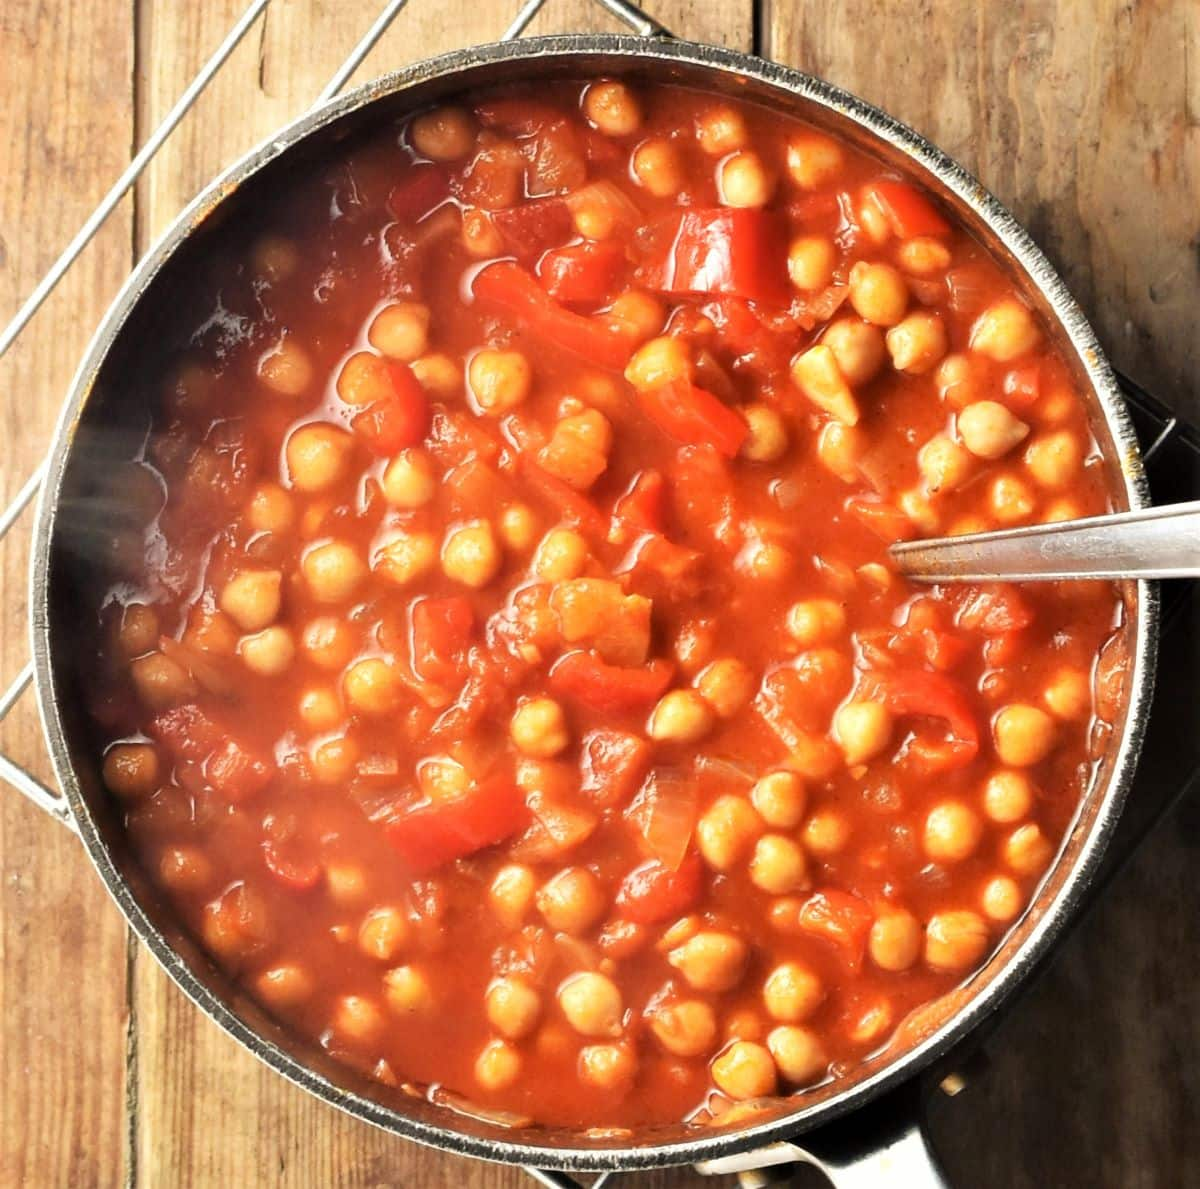 Chickpea casserole in pot with spoon.